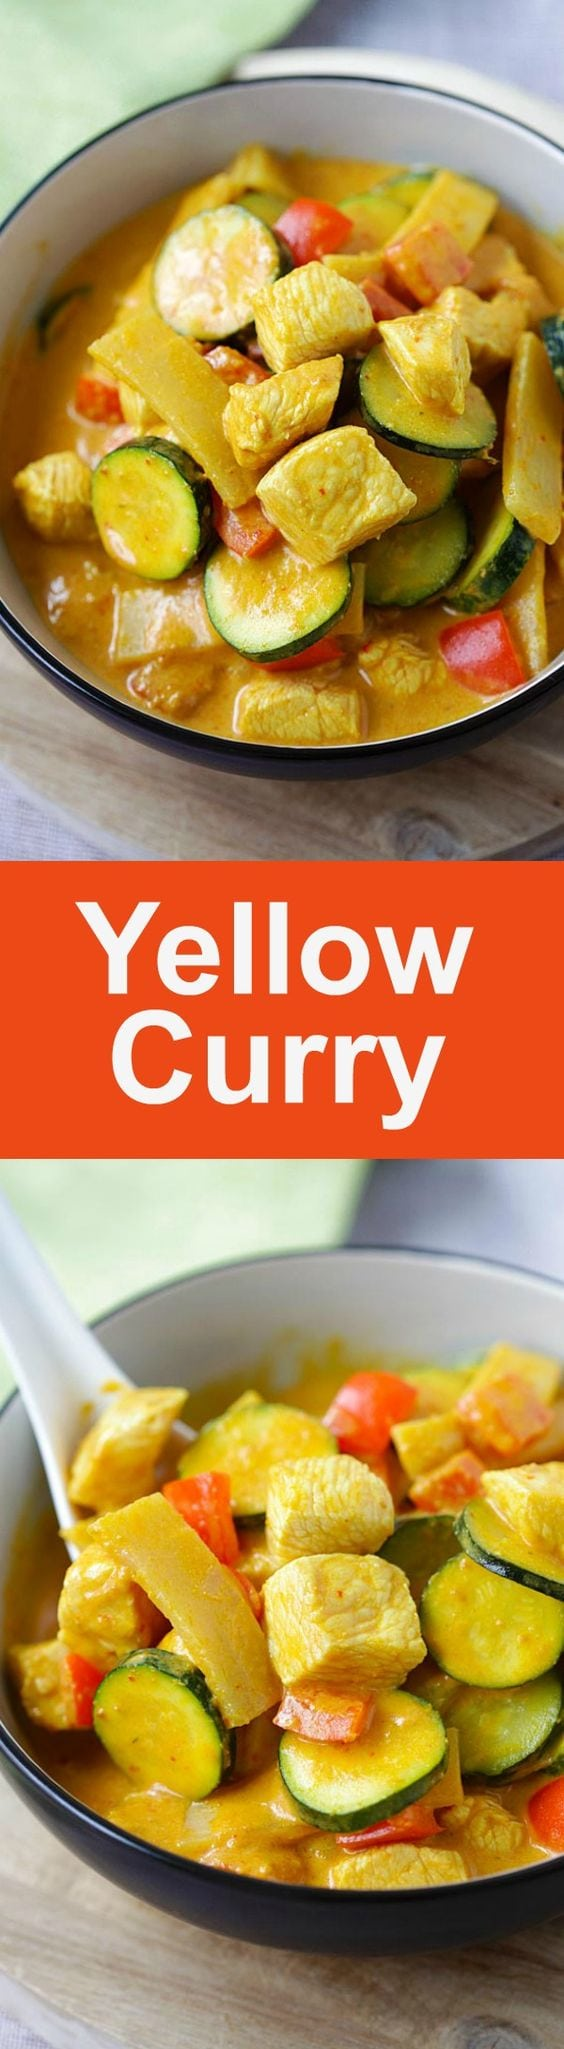 Thai Yellow Curry – creamy yellow curry recipe loaded with chicken, zucchini and bell peppers. So easy and much better than takeouts | rasamalaysia.com